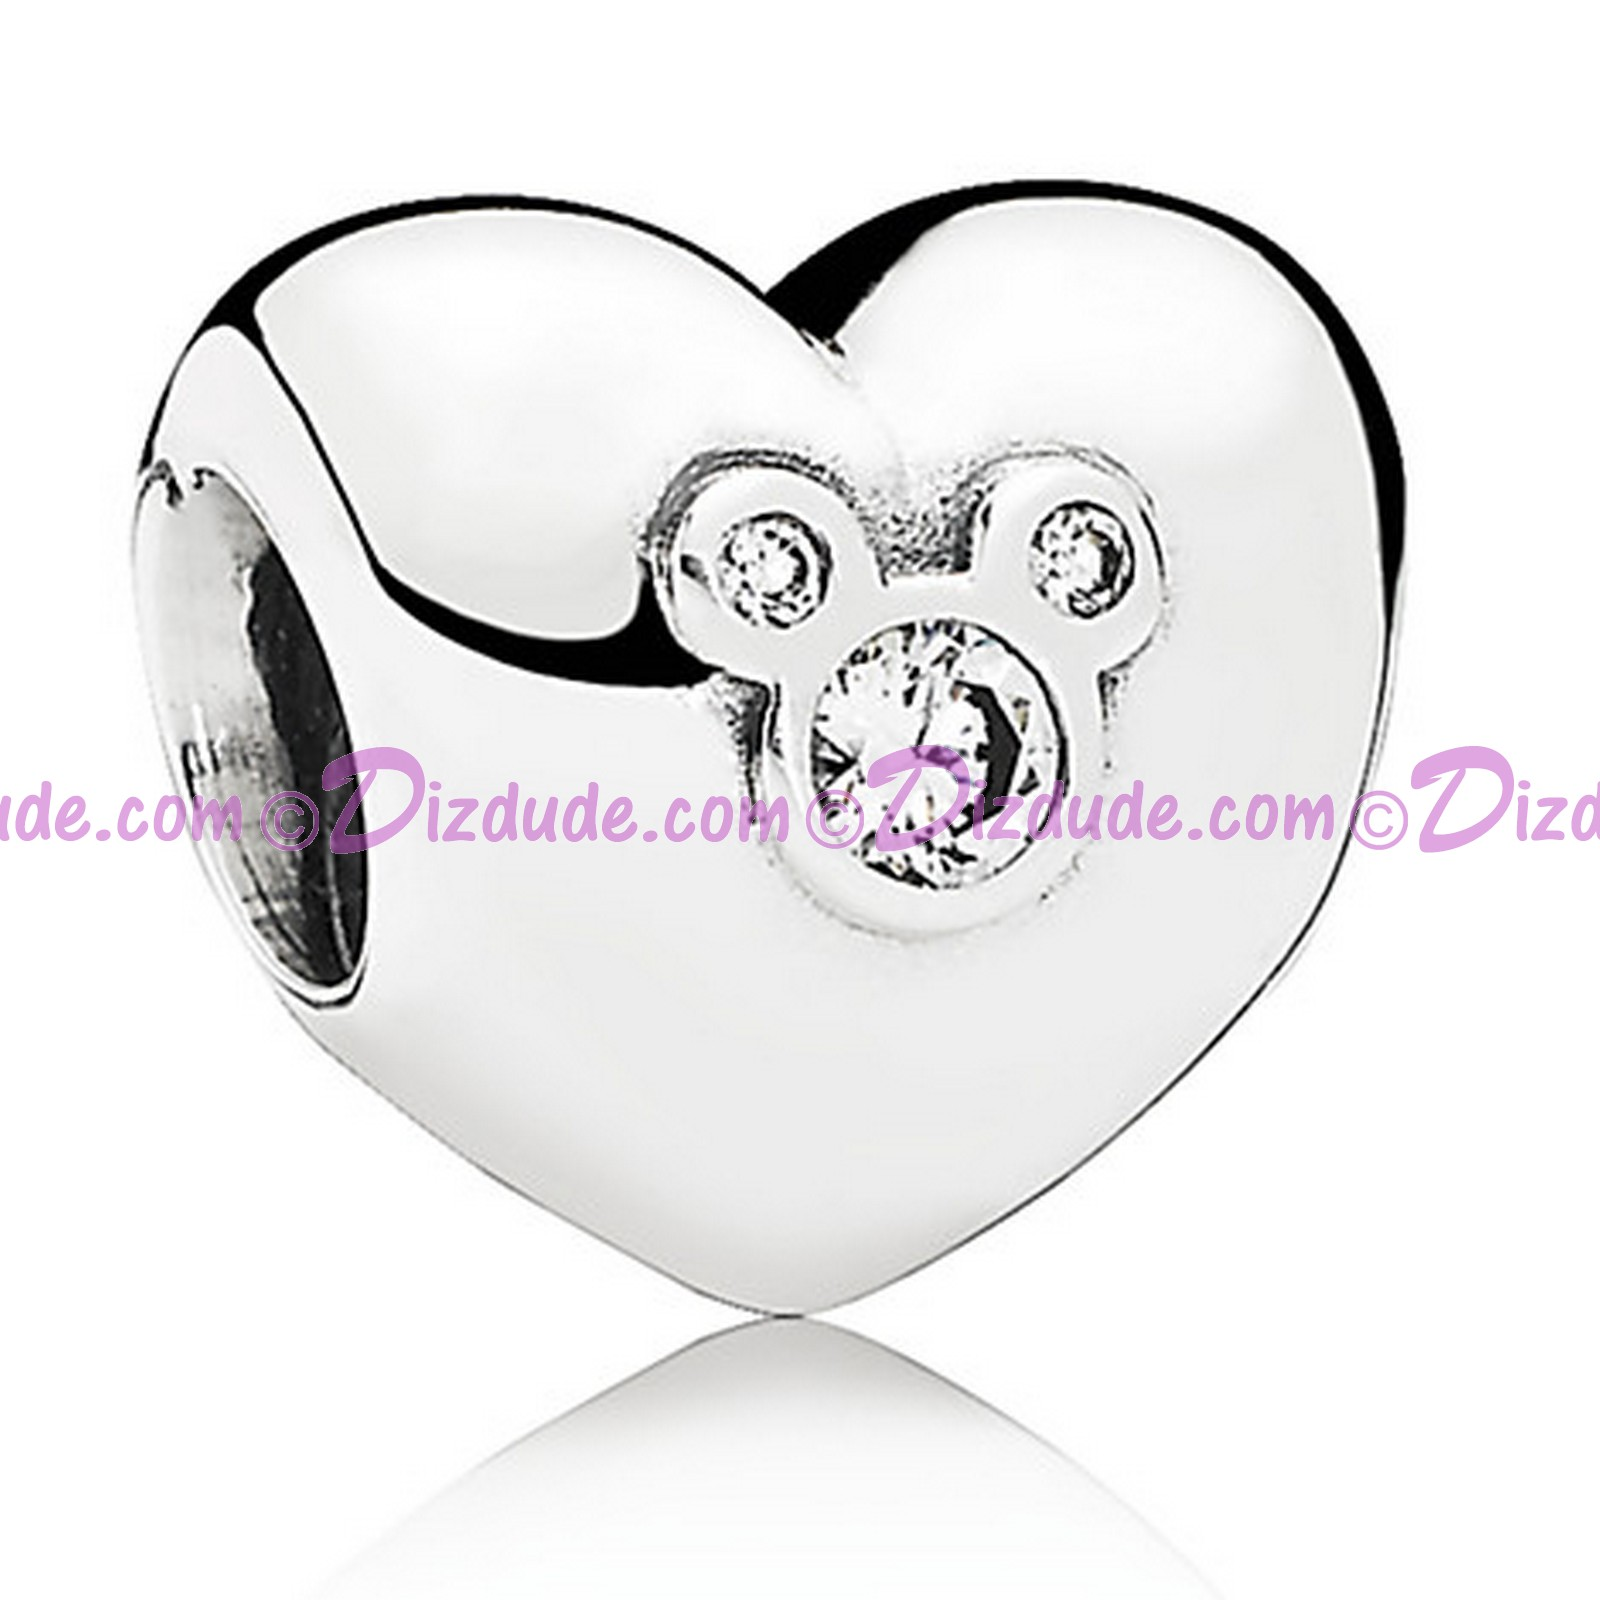 "(SOLD OUT) Disney Pandora ""Heart of Mickey"" Sterling Silver Charm with Cubic Zirconias"